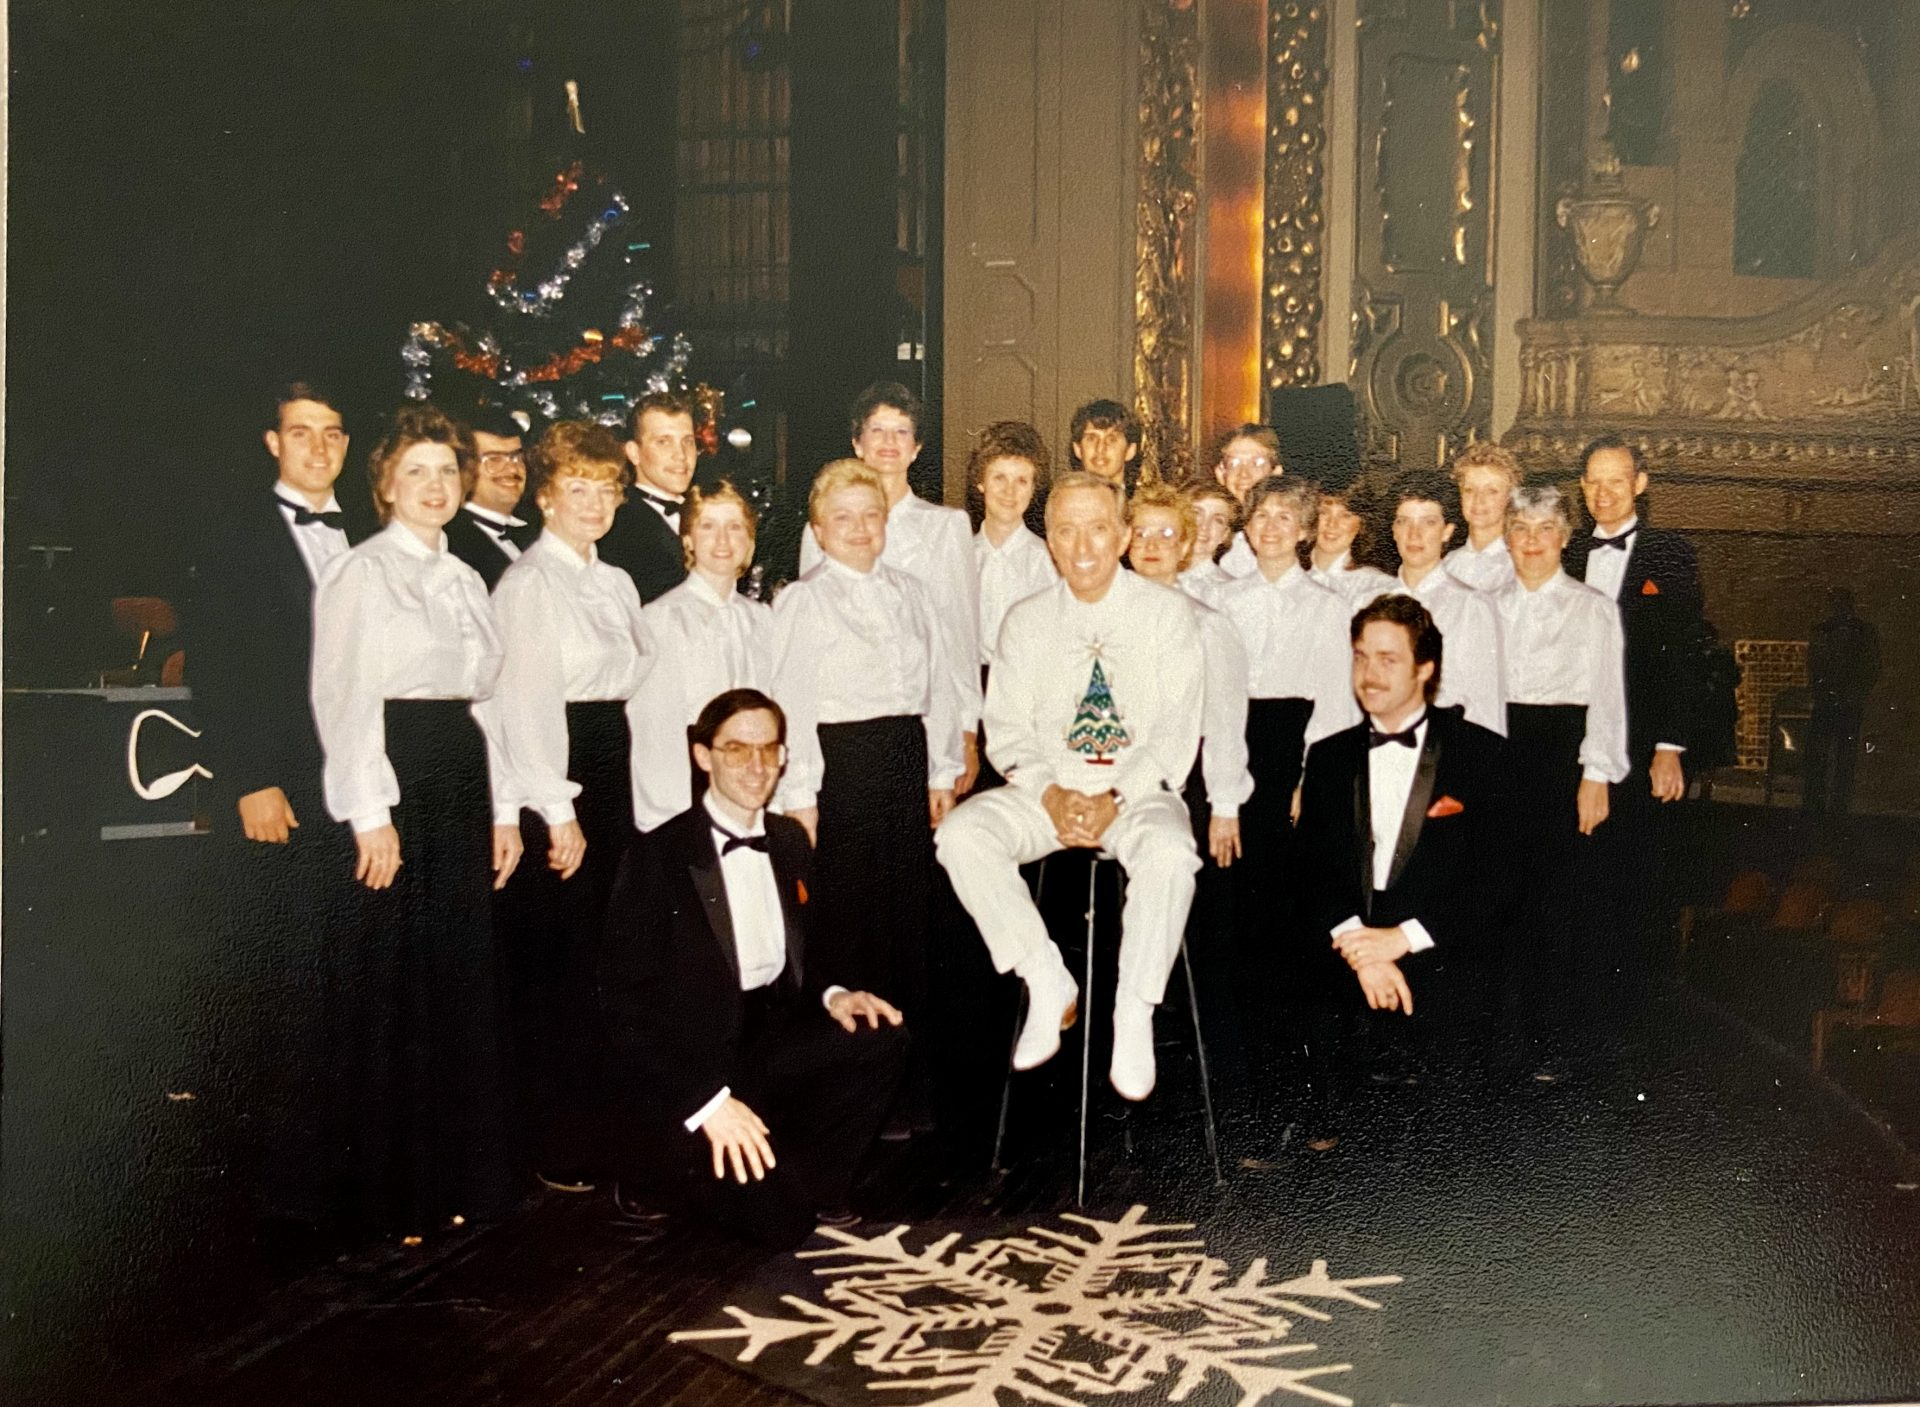 The Joliet Chamber Choir with Andy Williams - Ann is right behind him in the photo.